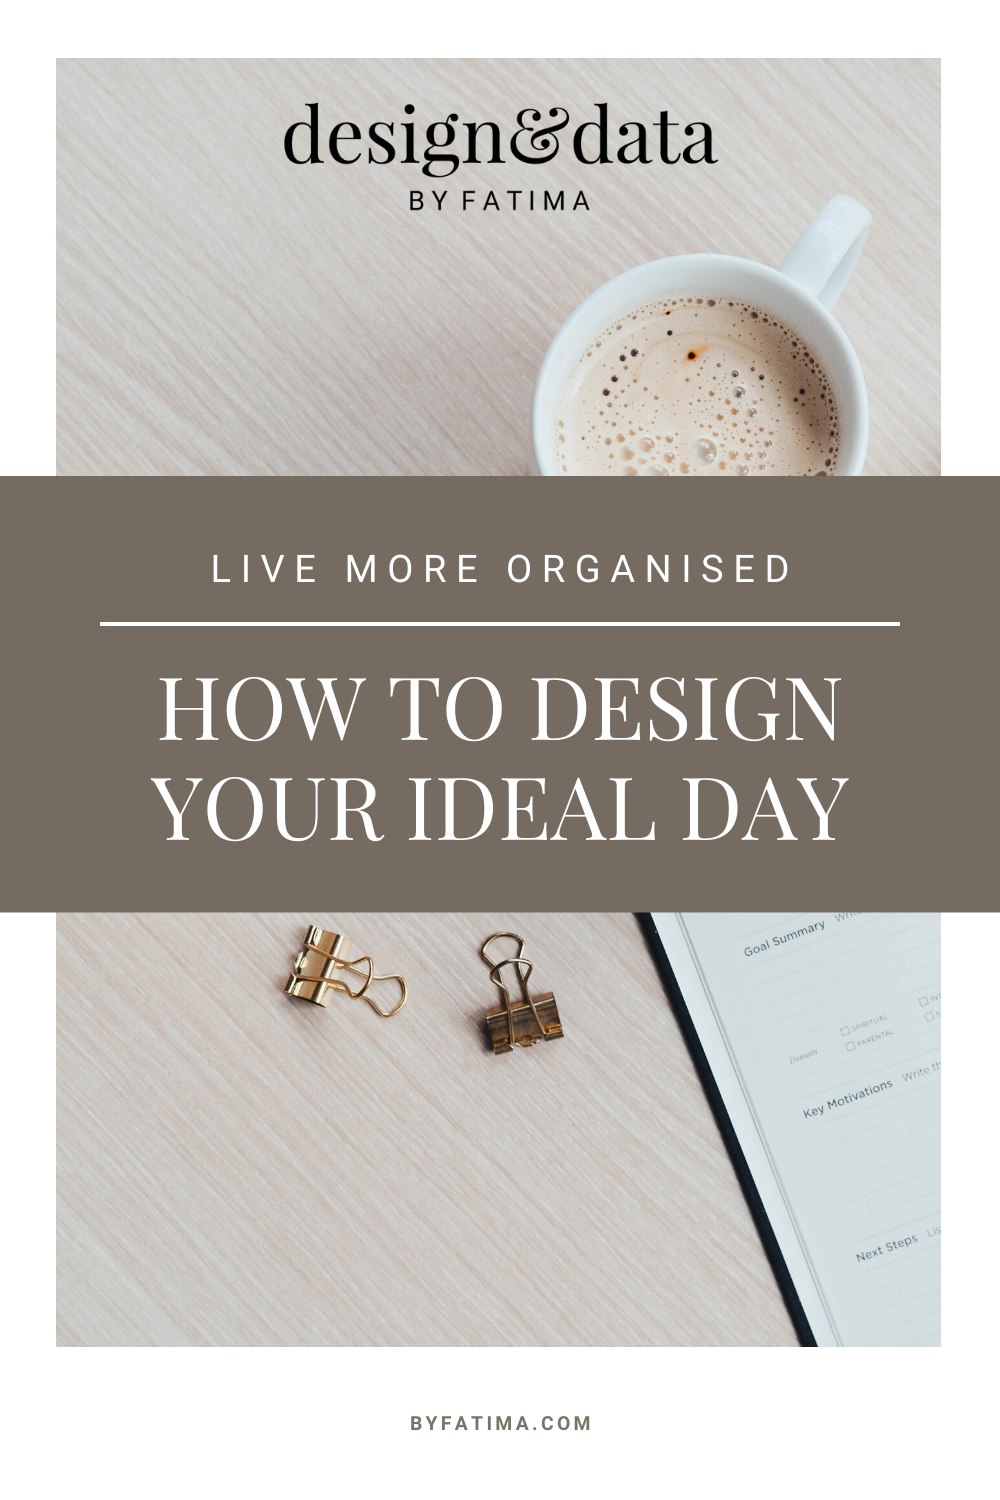 How to design your ideal day